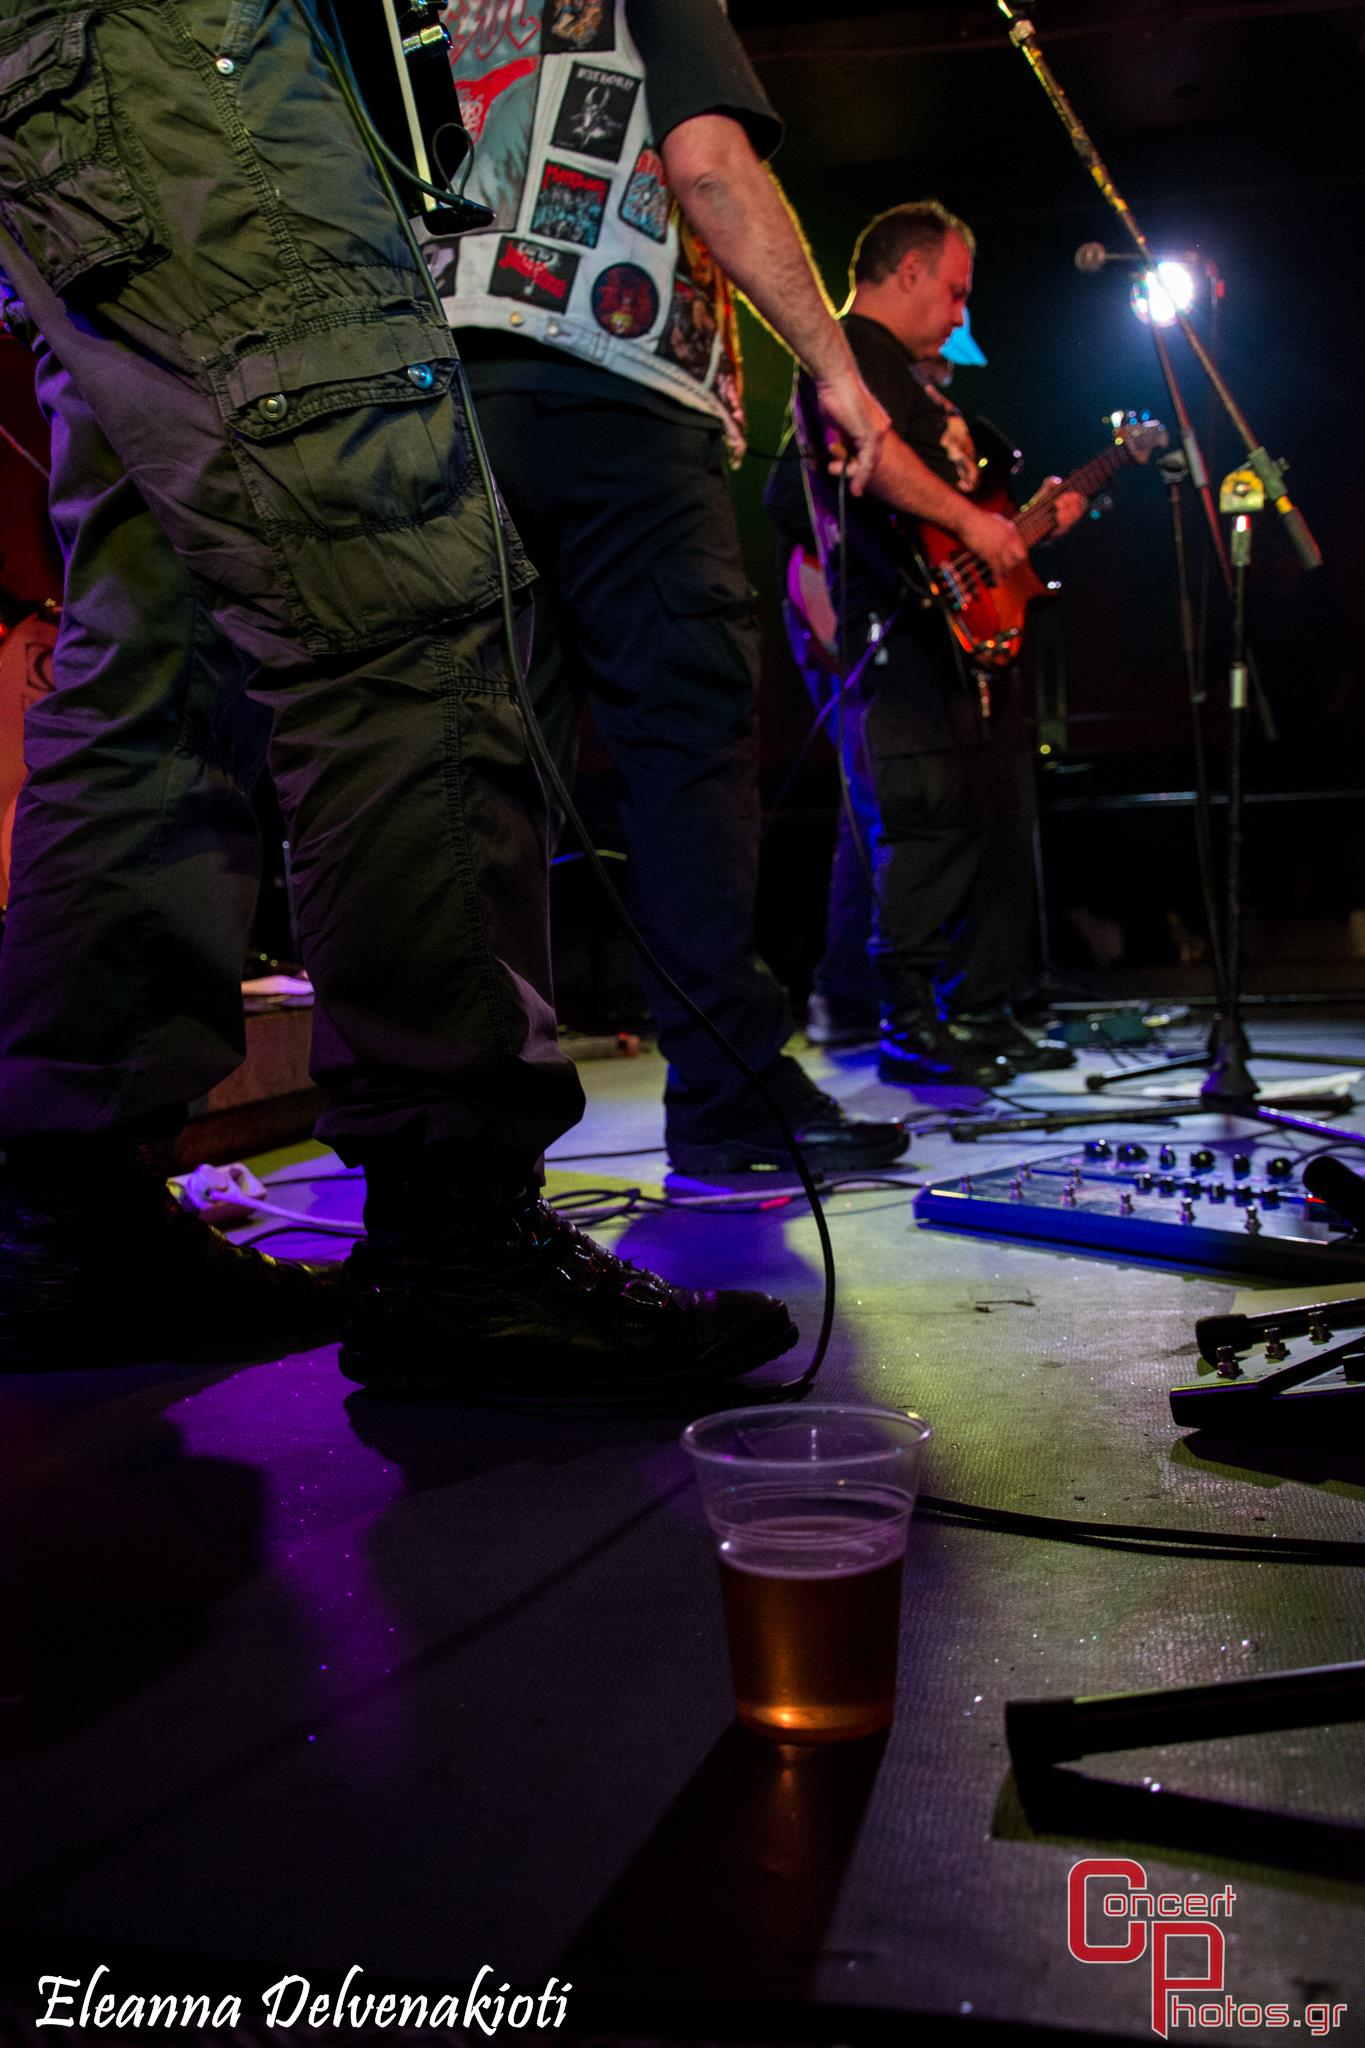 Battle Of The Bands Athens - Leg 4-test photographer:  - Battle Of The Bands-20150208-205413